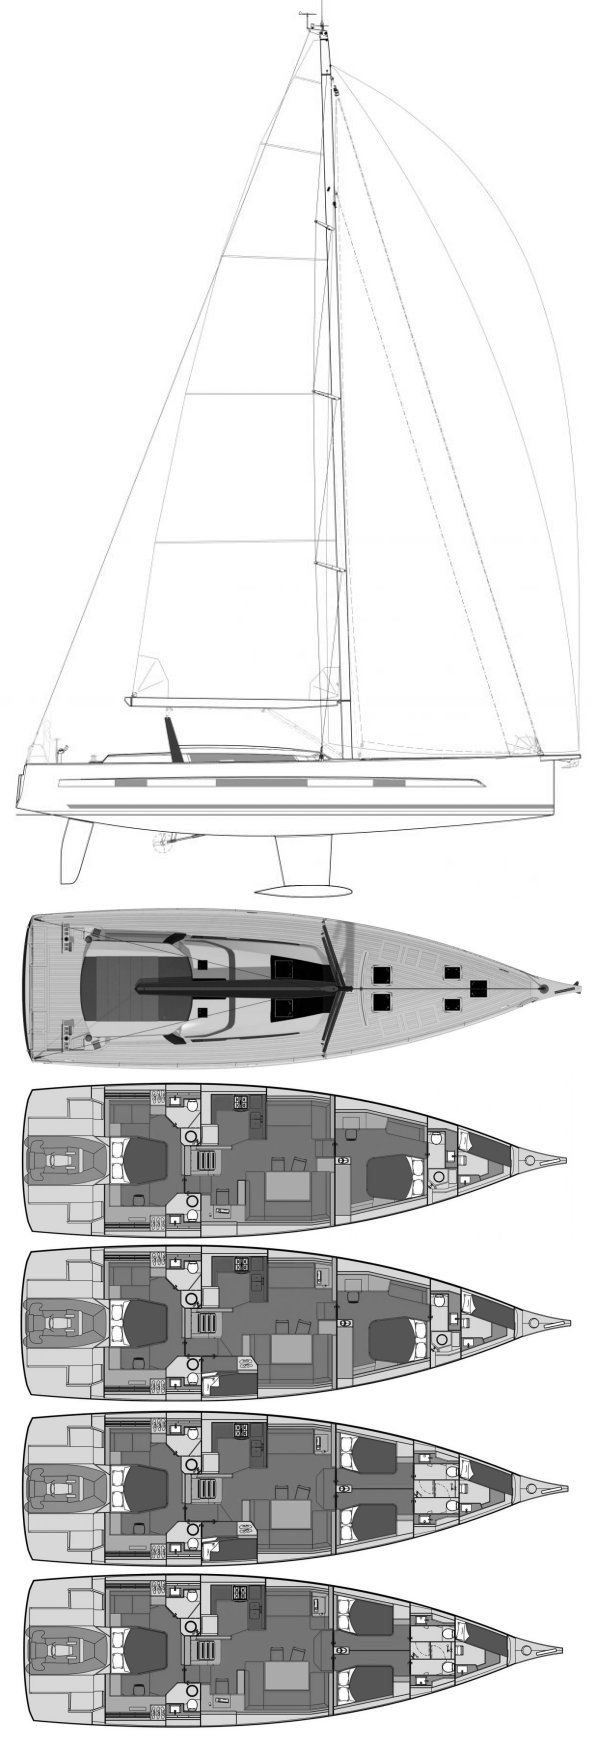 DUFOUR 63 drawing